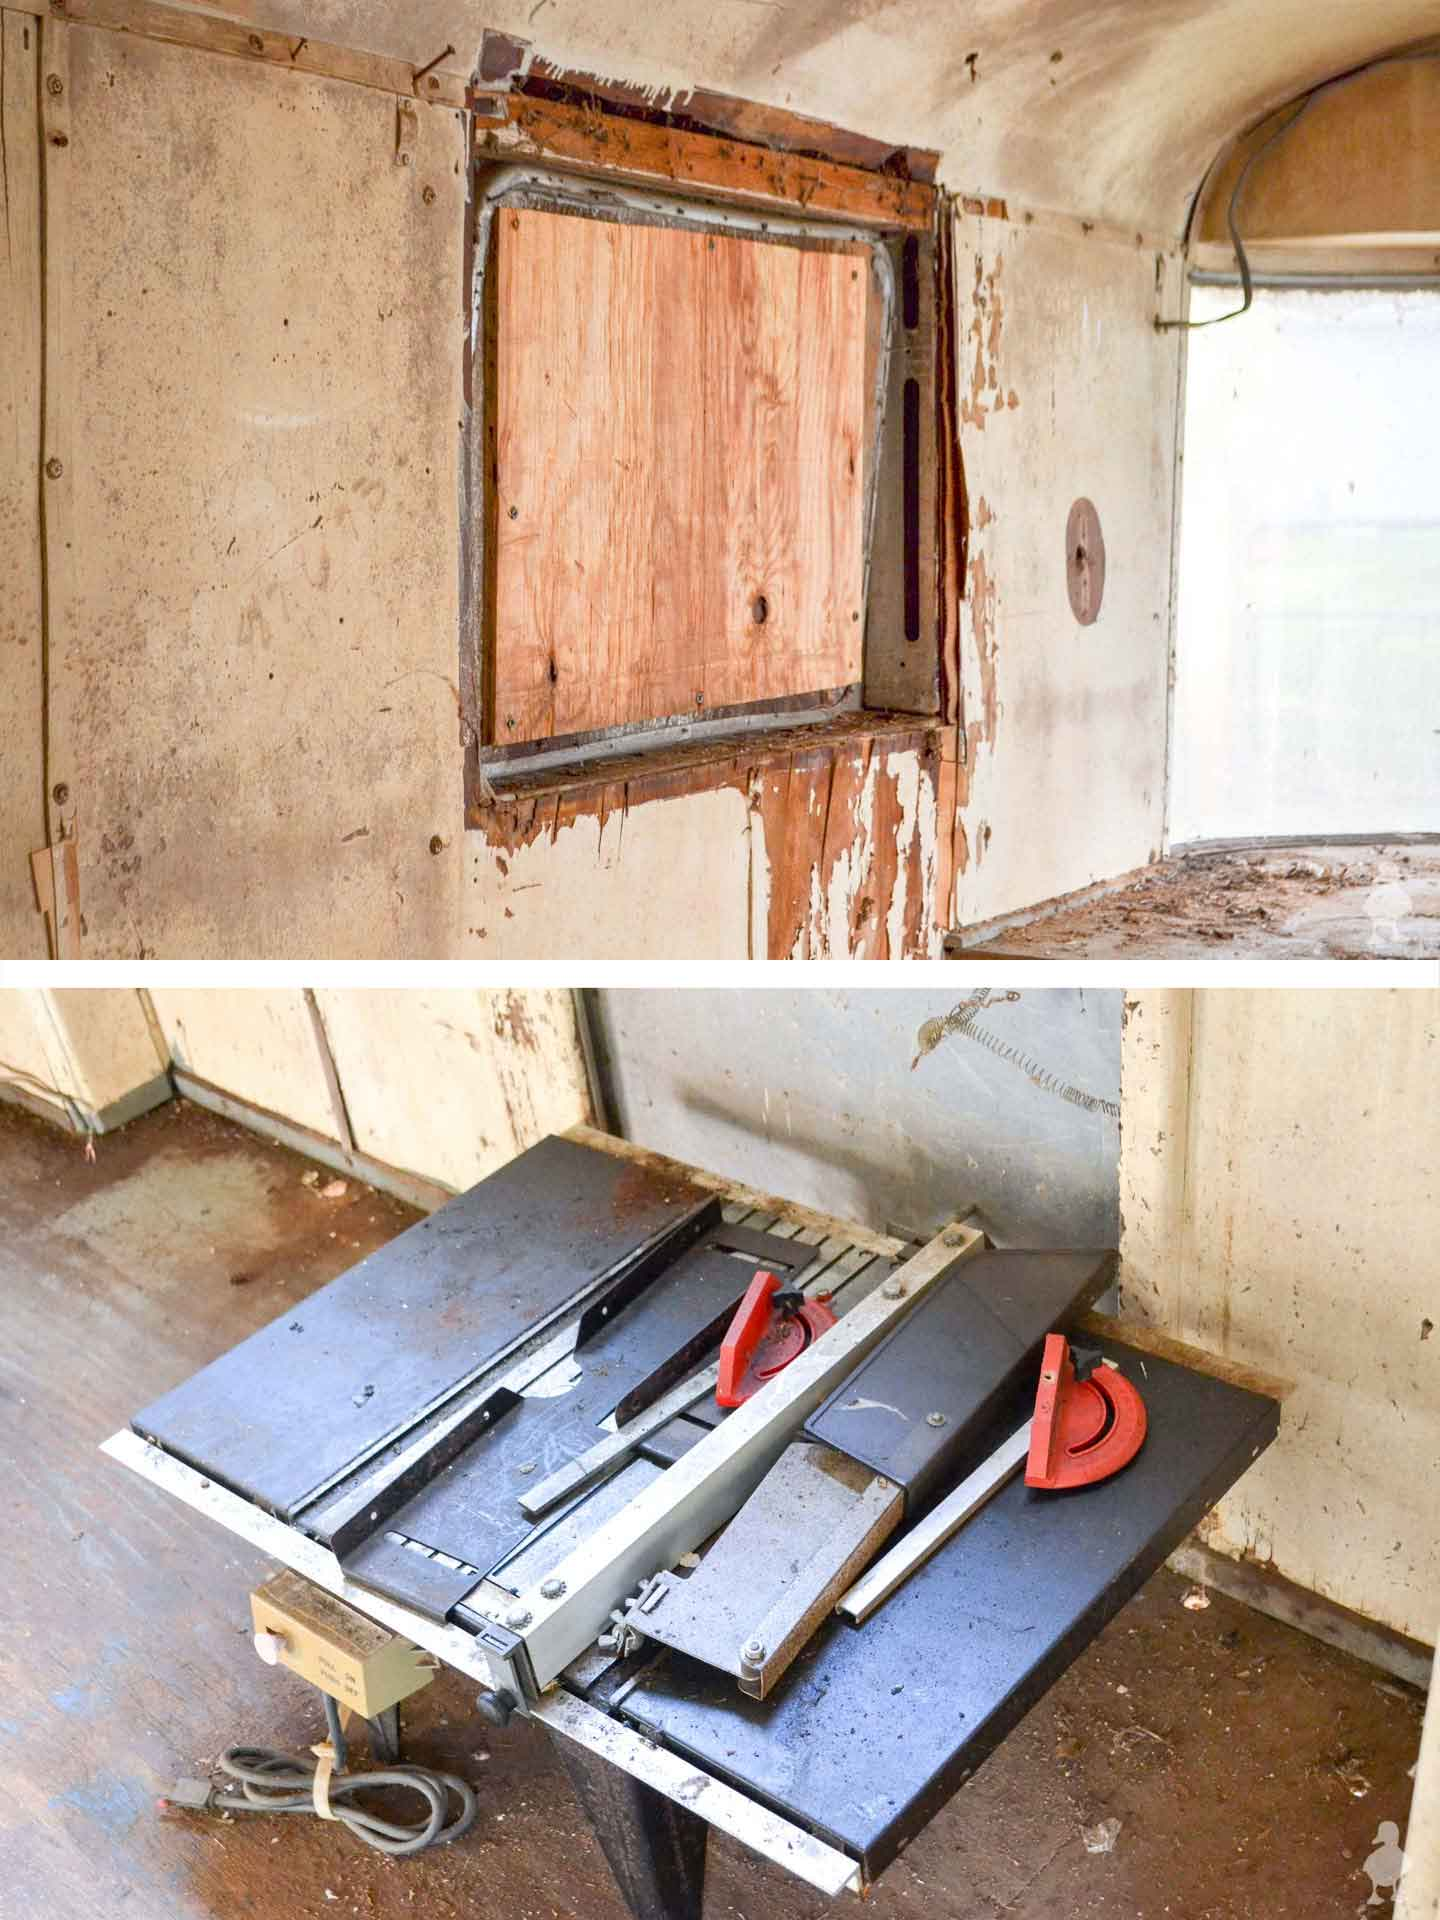 Ruby's-Revival-interior-busted-window-and-old-tools